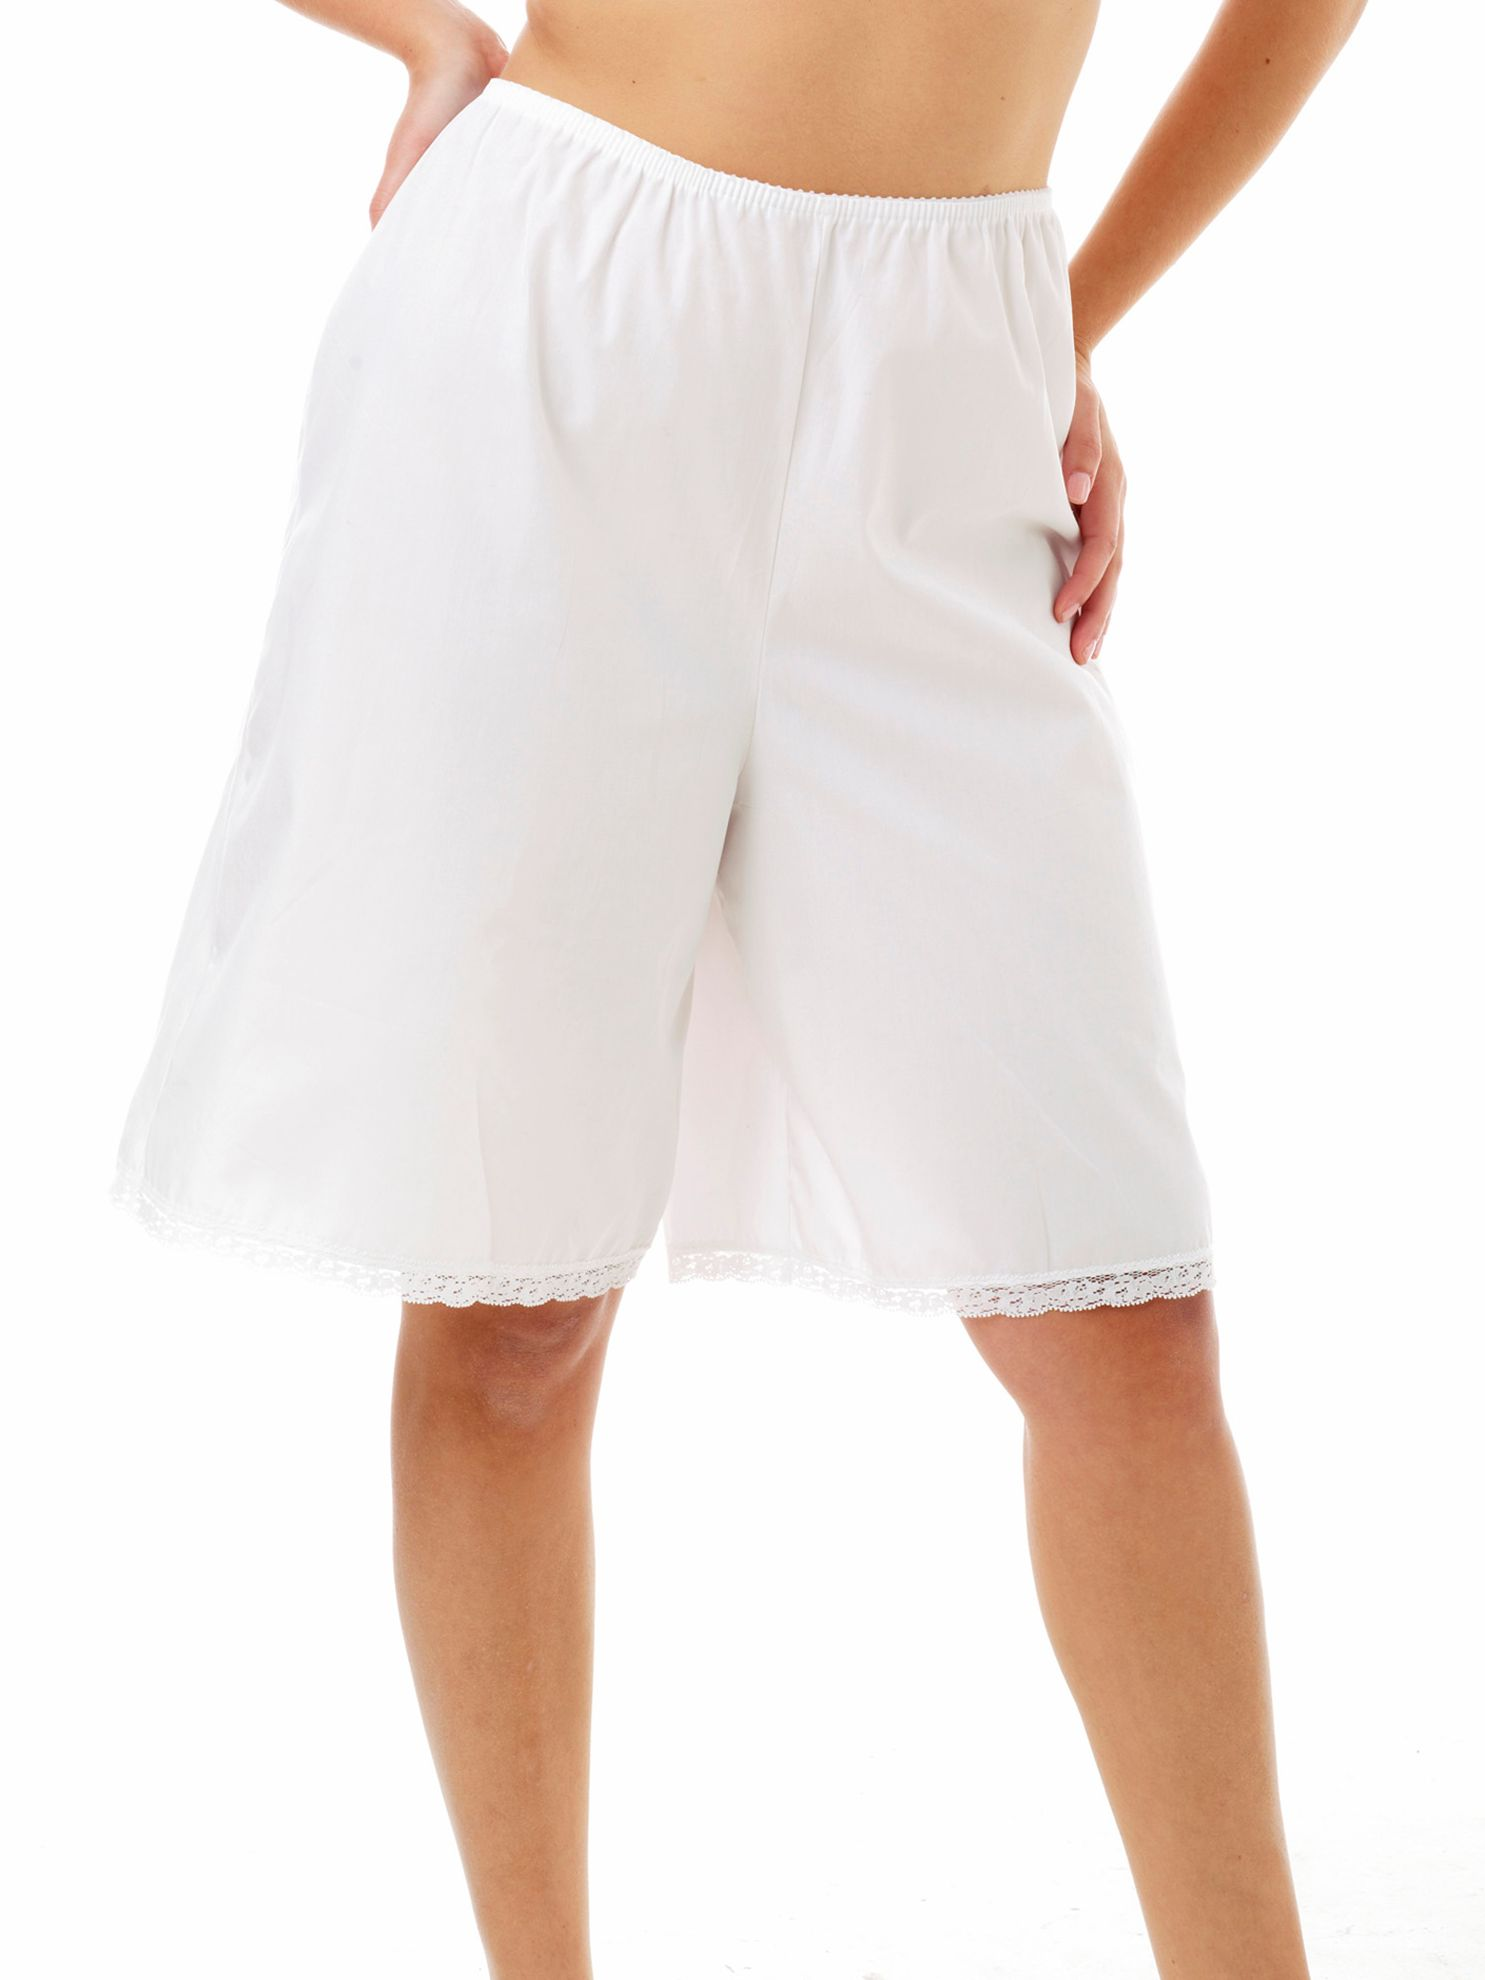 Picture of Woven Cotton Pettipants 9-inch Inseam